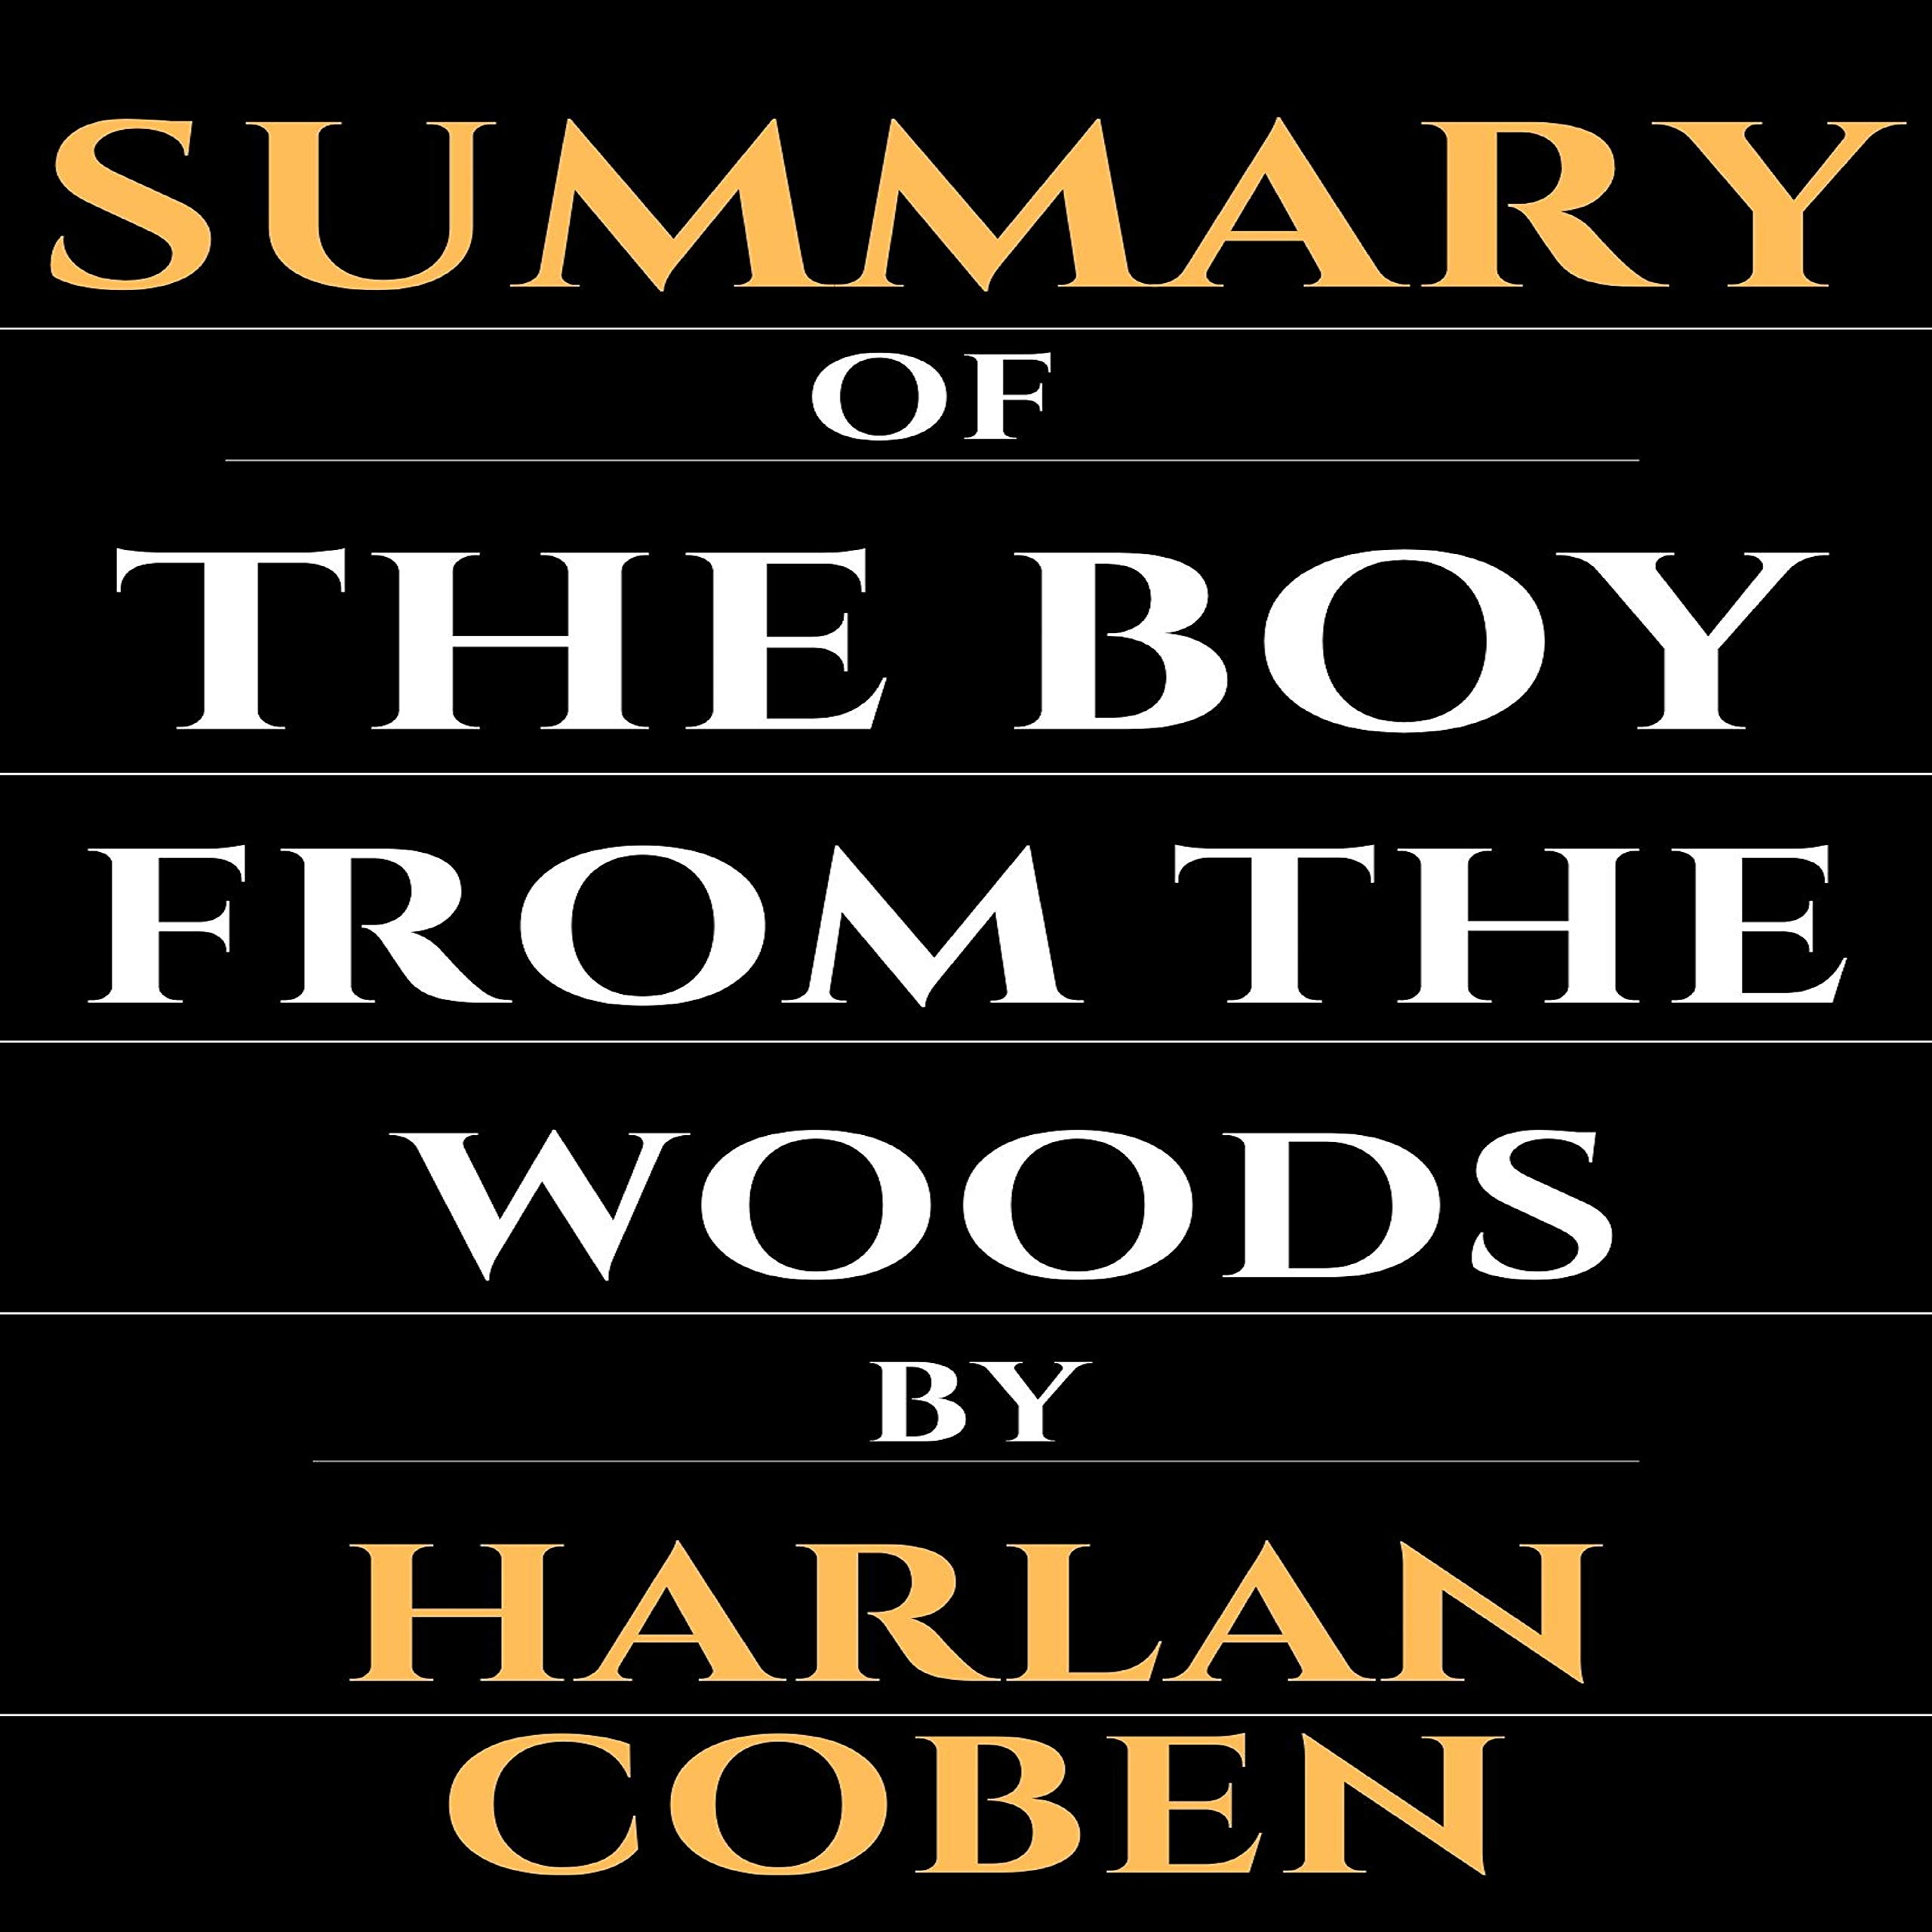 Summary Of The Boy From The Woods By Harlan Coben By Zahir Amrouche